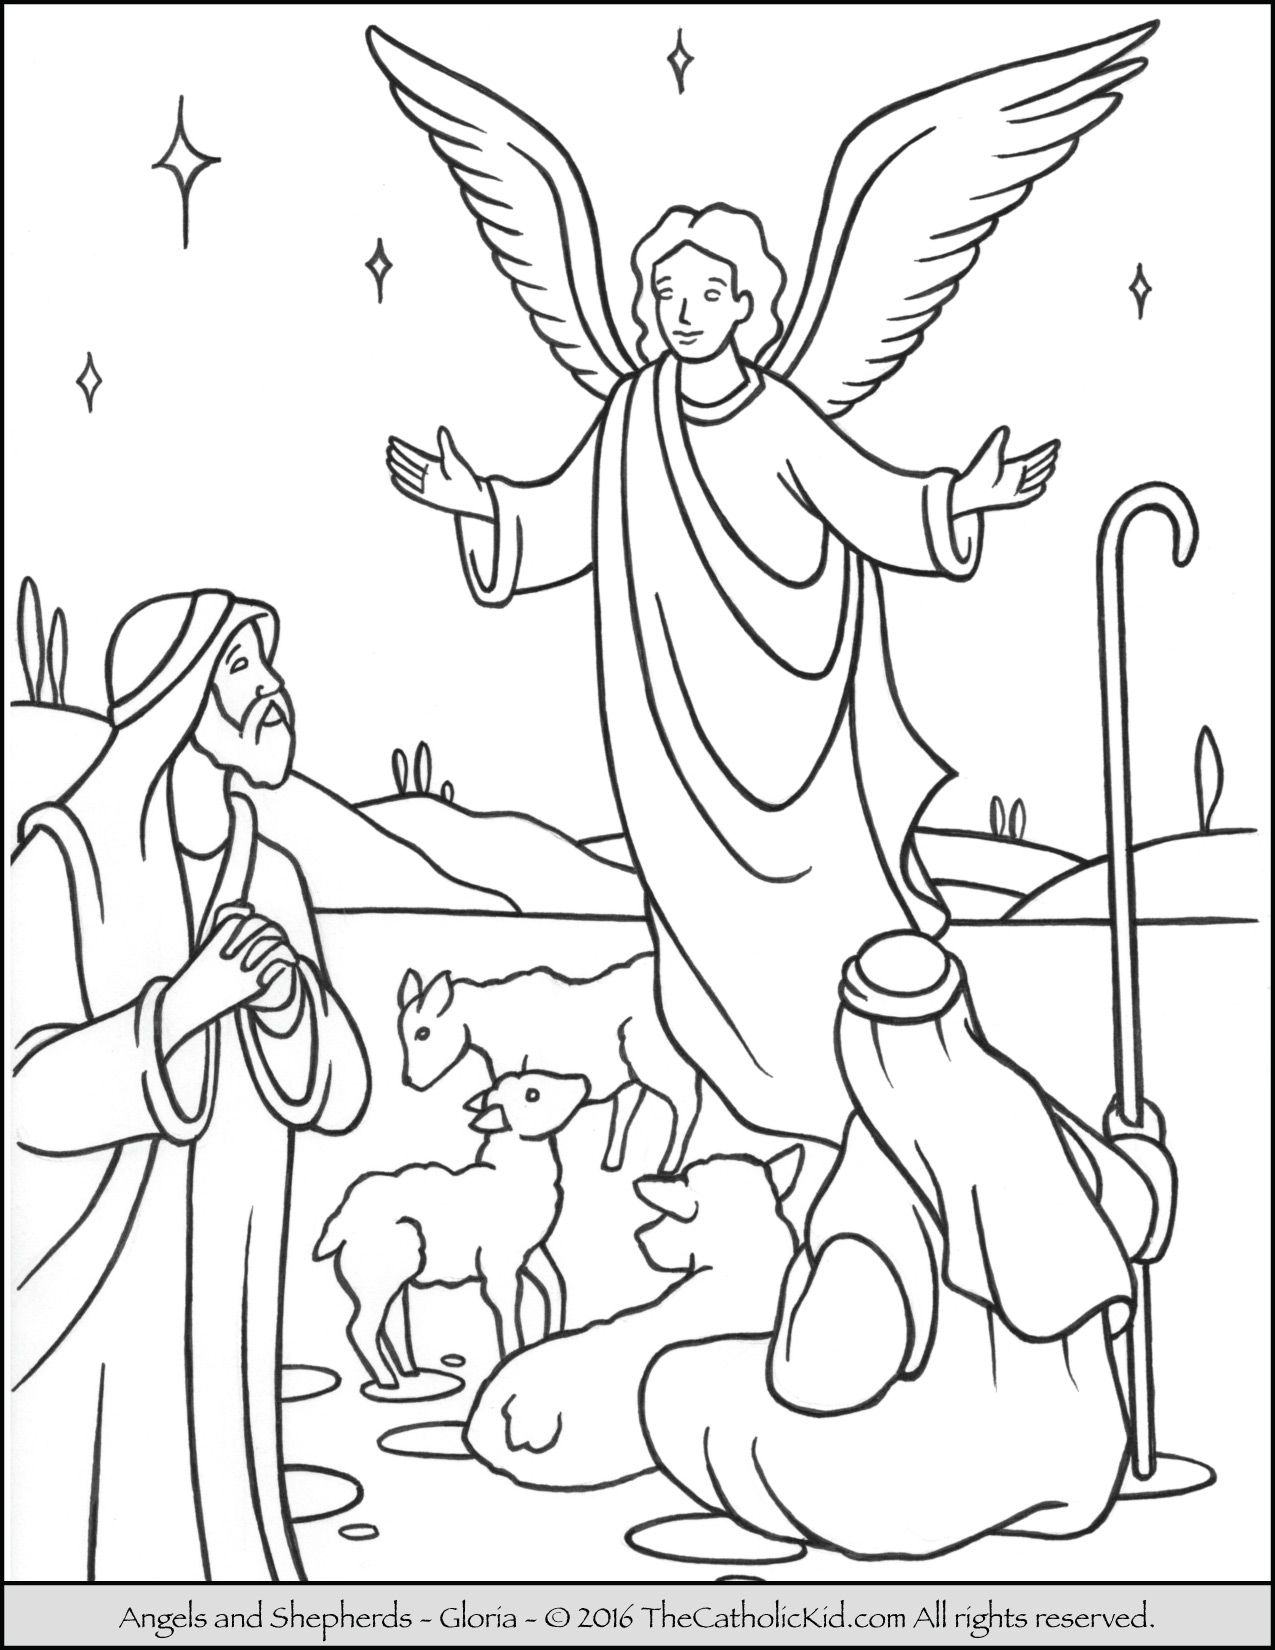 angels shepherds gloria coloring page nativity coloring pages angel coloring pages christmas coloring pages